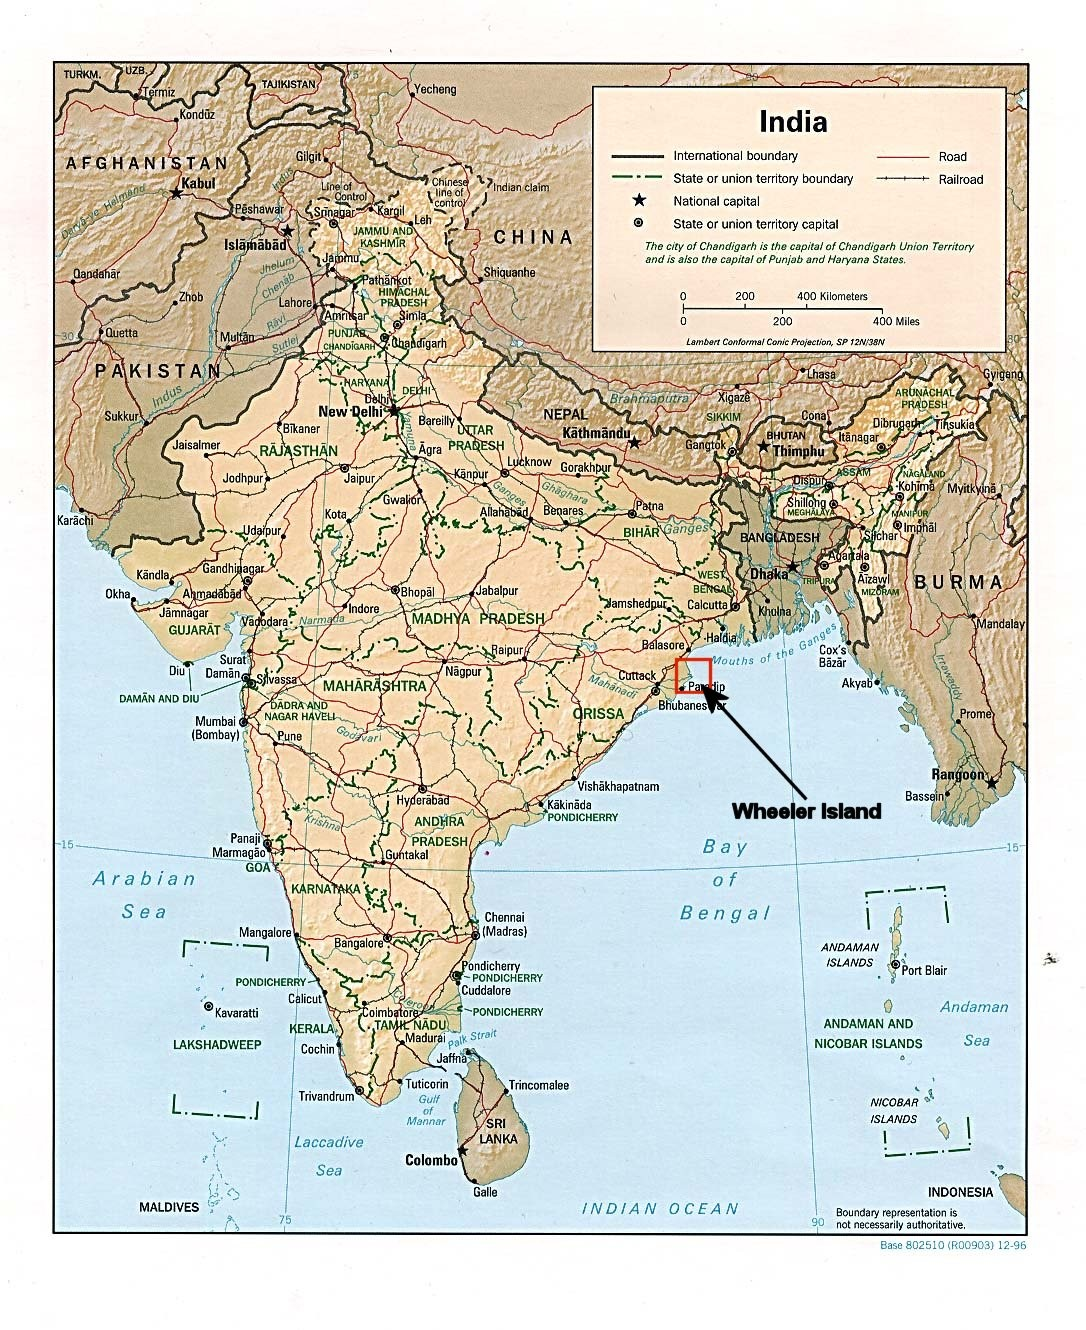 cia-map-india-wheeler-island map